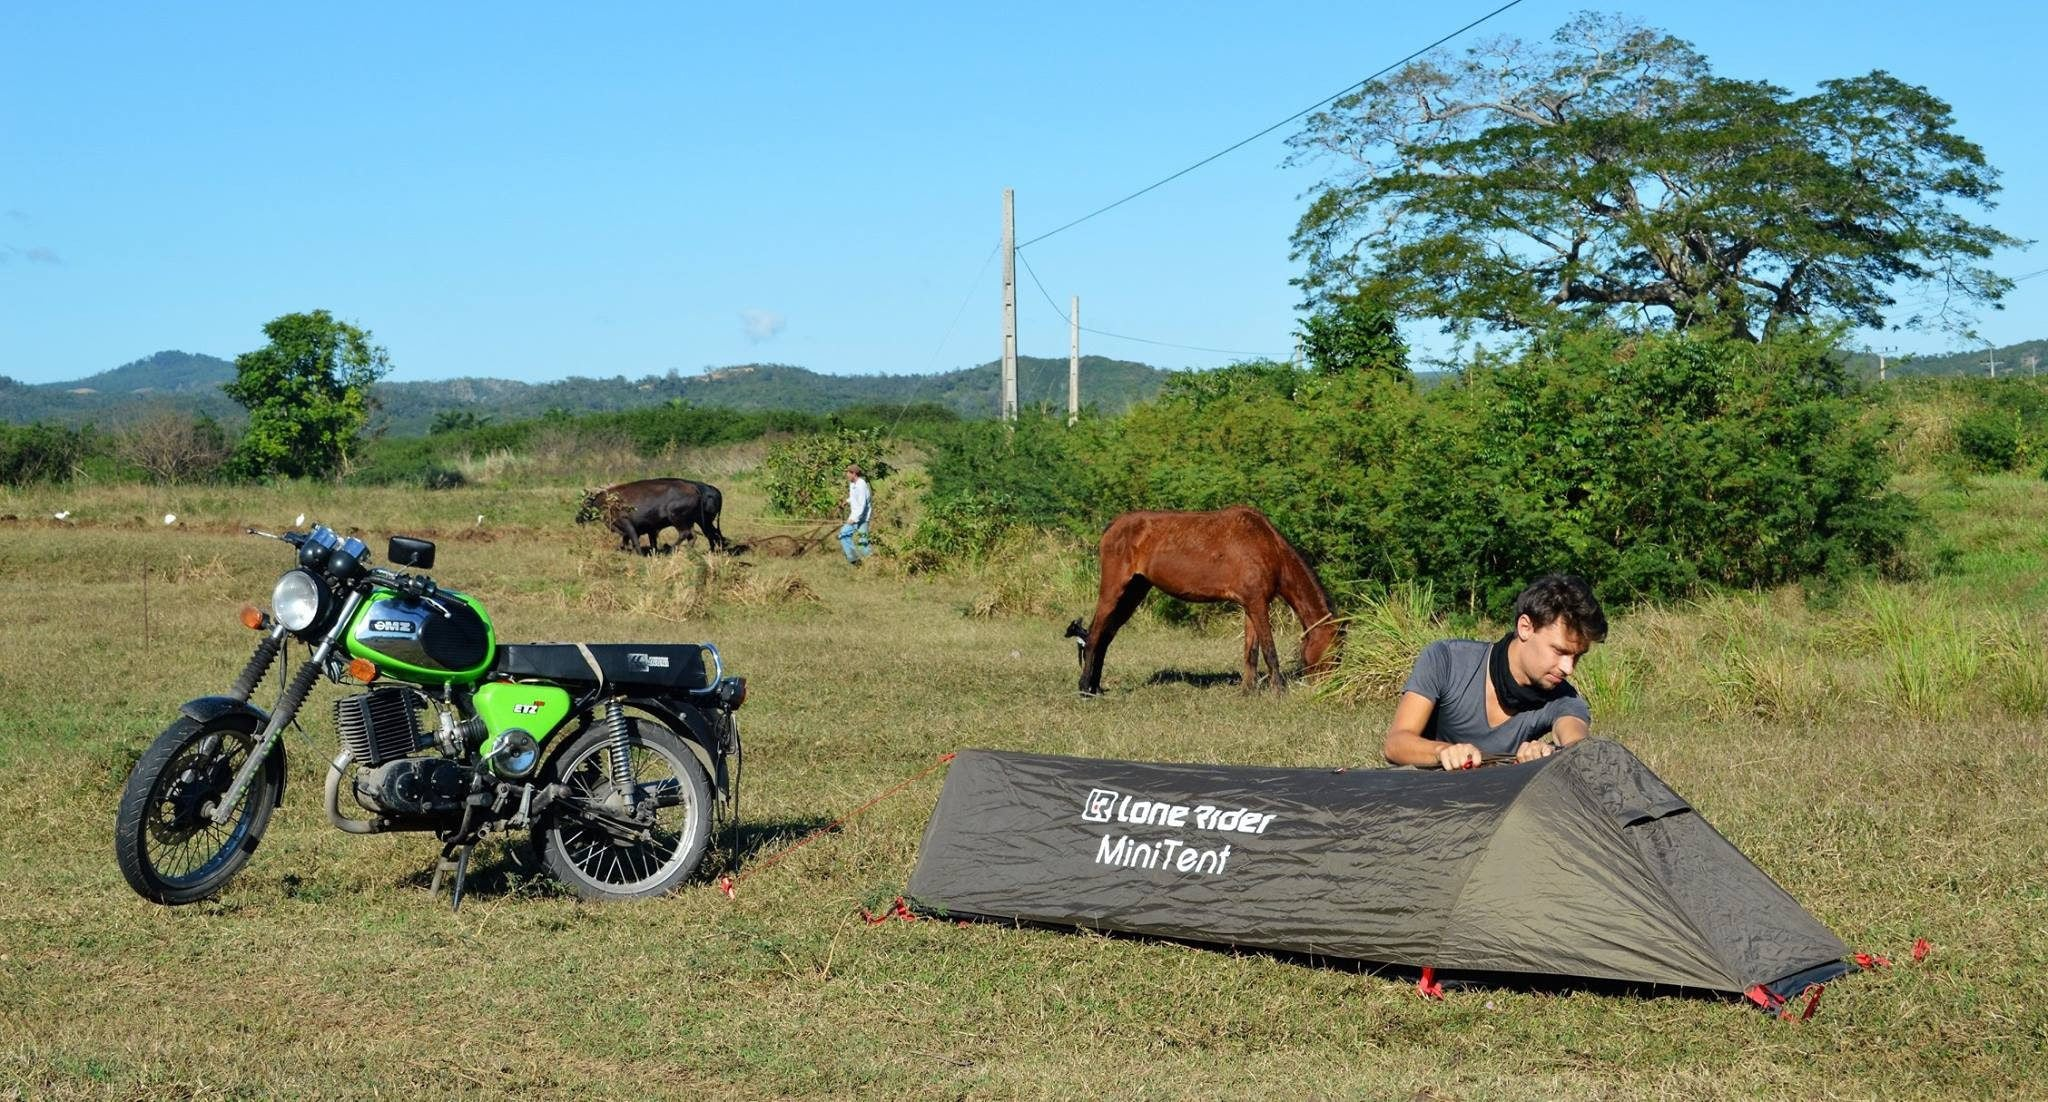 ... MiniTent - Lone Rider - Motorcycle Tent and C&ing Expert ... & MiniTent | Lone Rider | Lone Rider